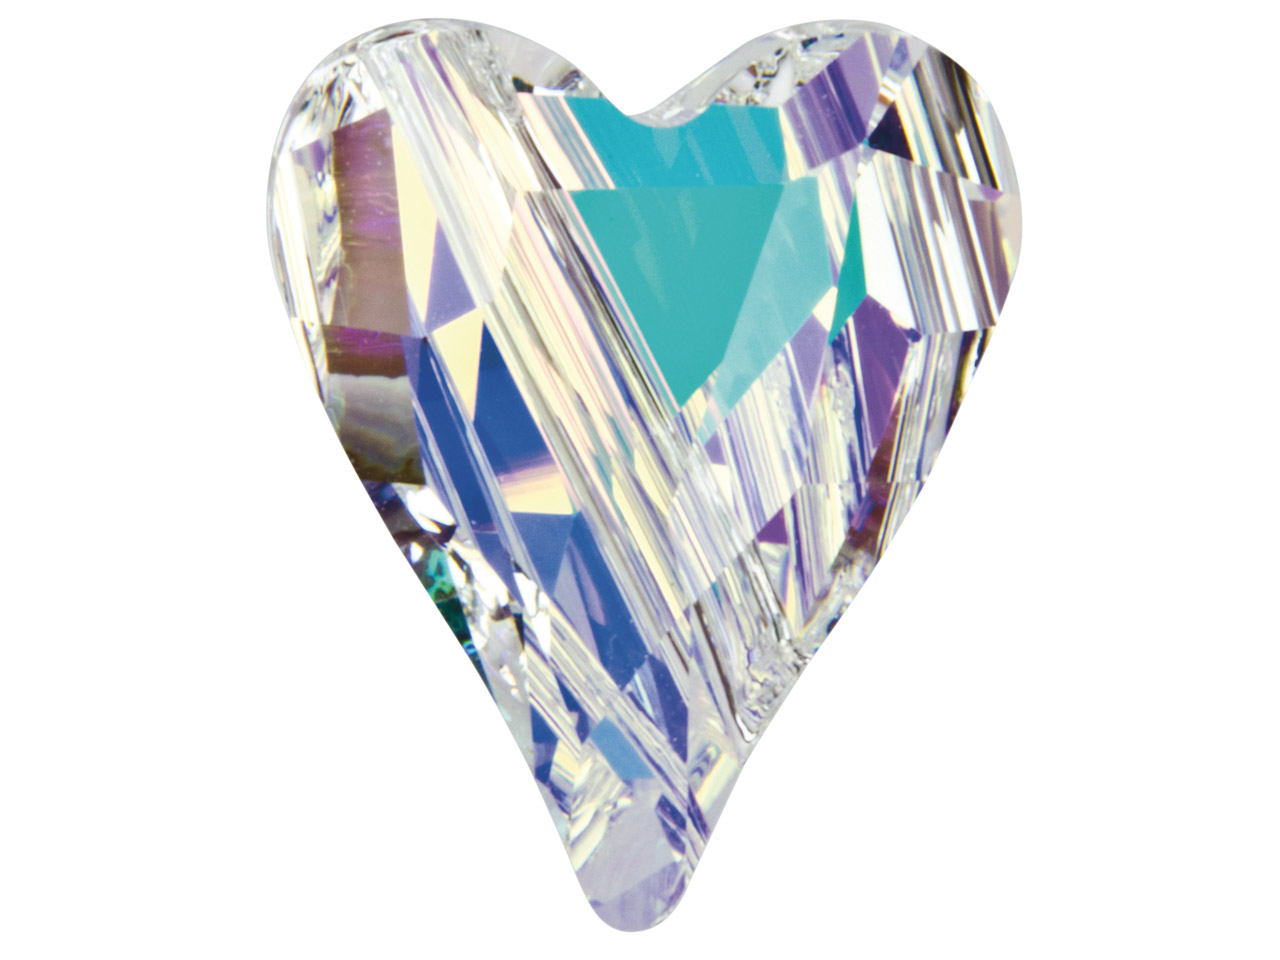 Swarovski Crystal Pack of 2 Wild   Heart Beads, 5743, 12mm Crystal Ab